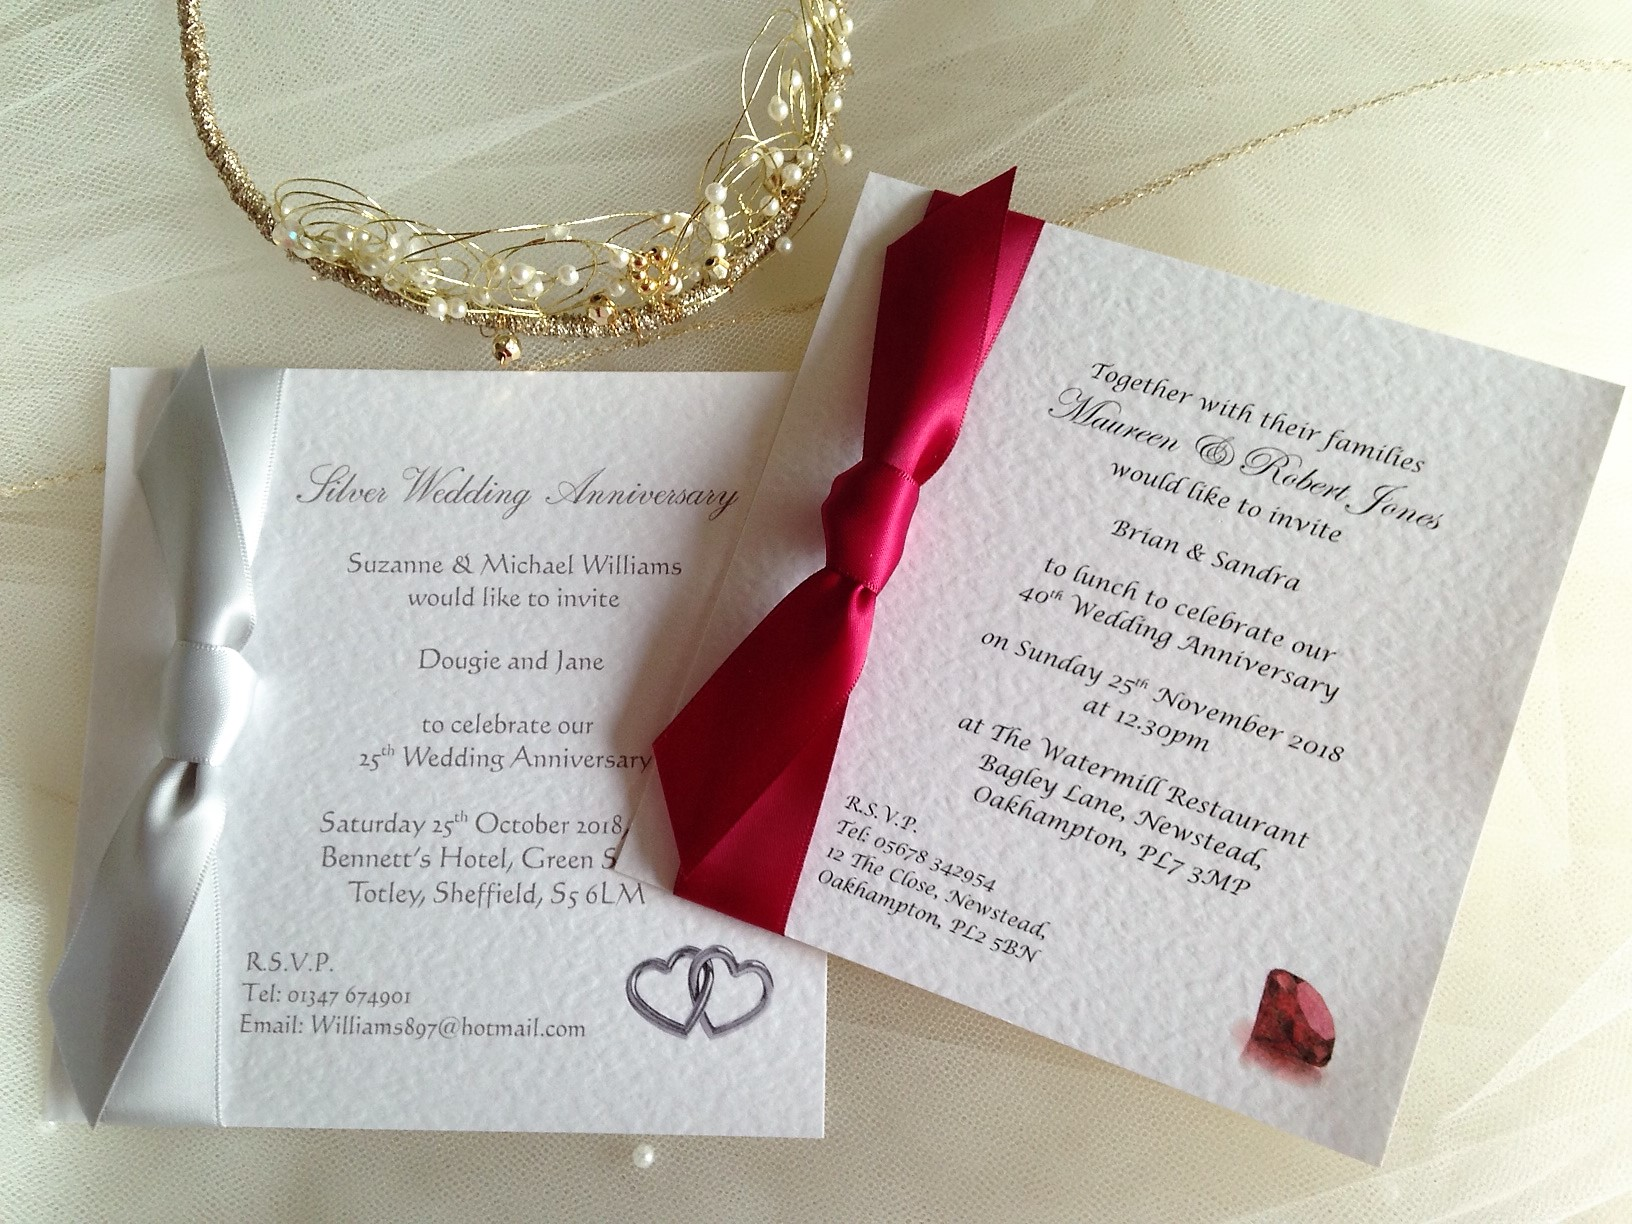 Square Wedding Anniversary Invitations with side ribbon